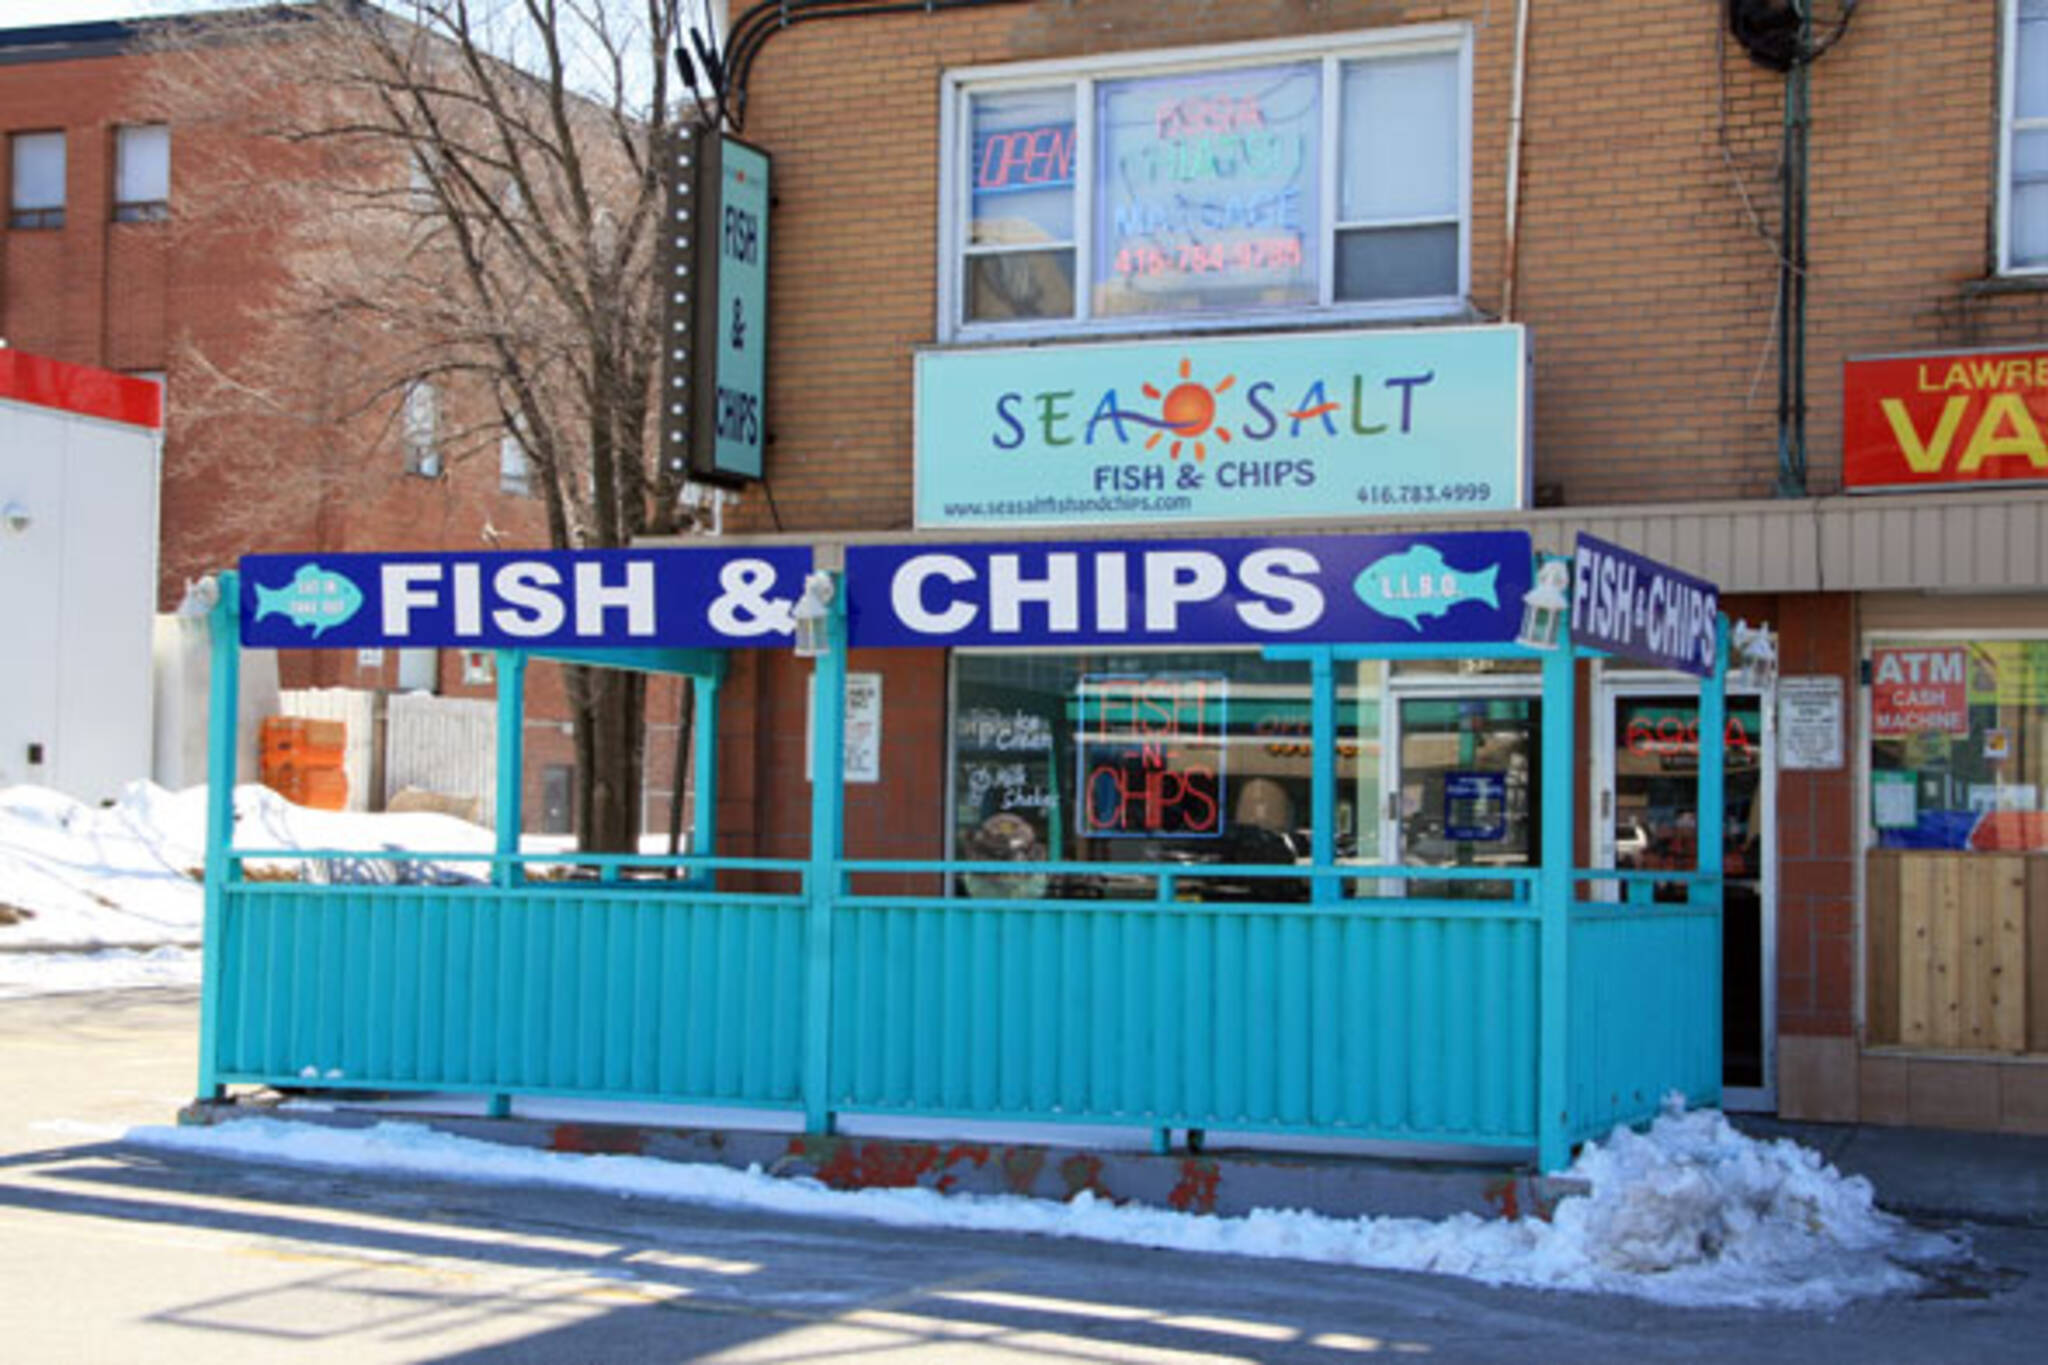 Sea salt fish chips closed blogto toronto for Best place for fish and chips near me